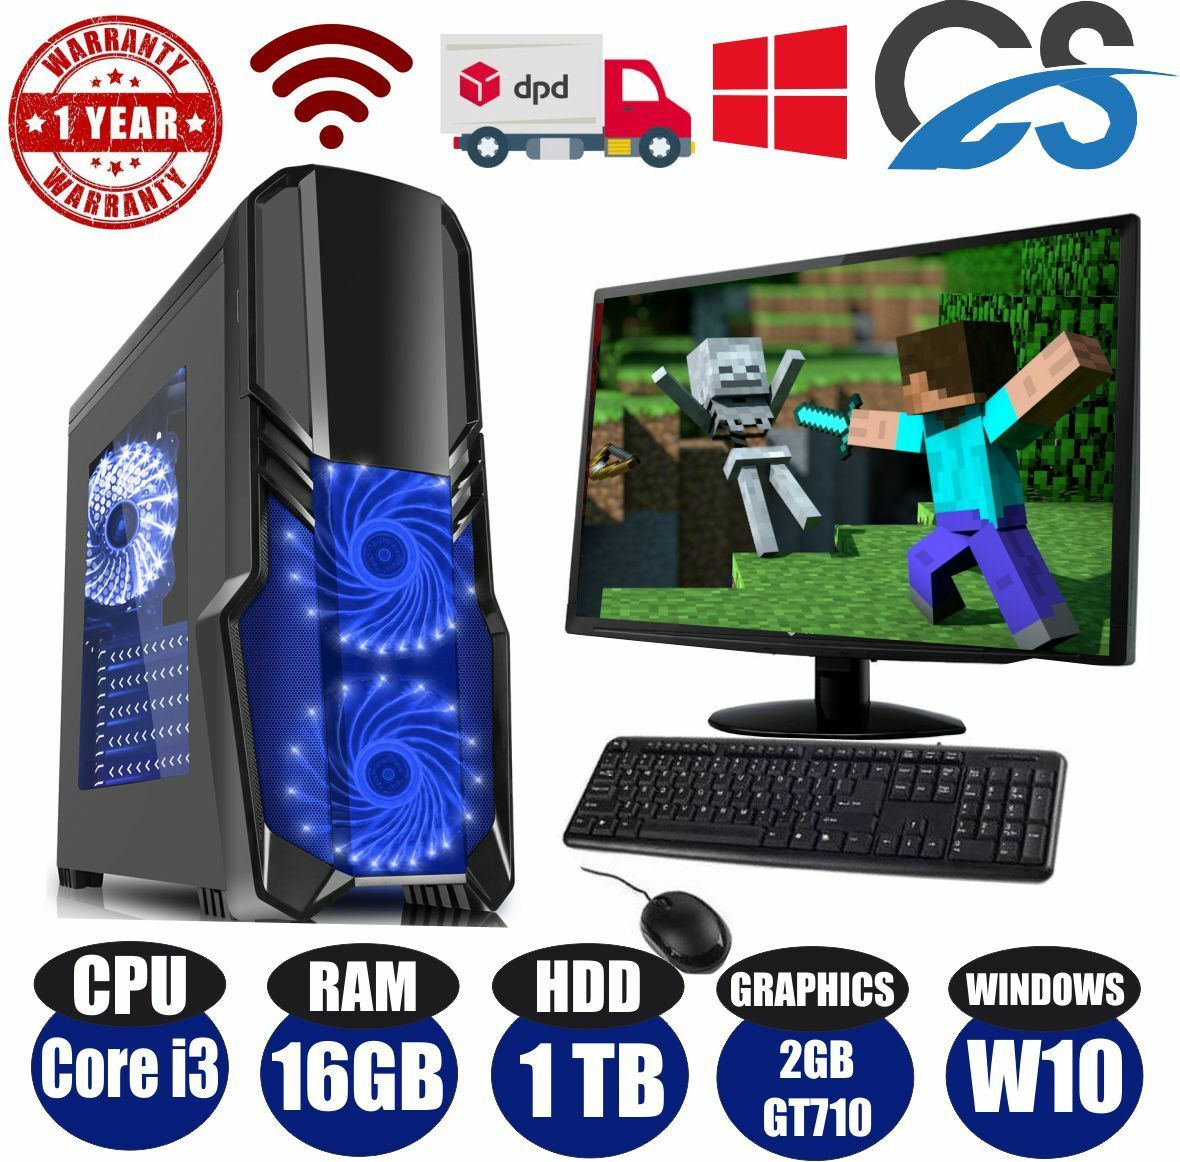 Computer Games - FAST Gaming Computer PC Bundle Intel Core i3 @ 3.10GHz 16GB 1TB Window 10 GT710